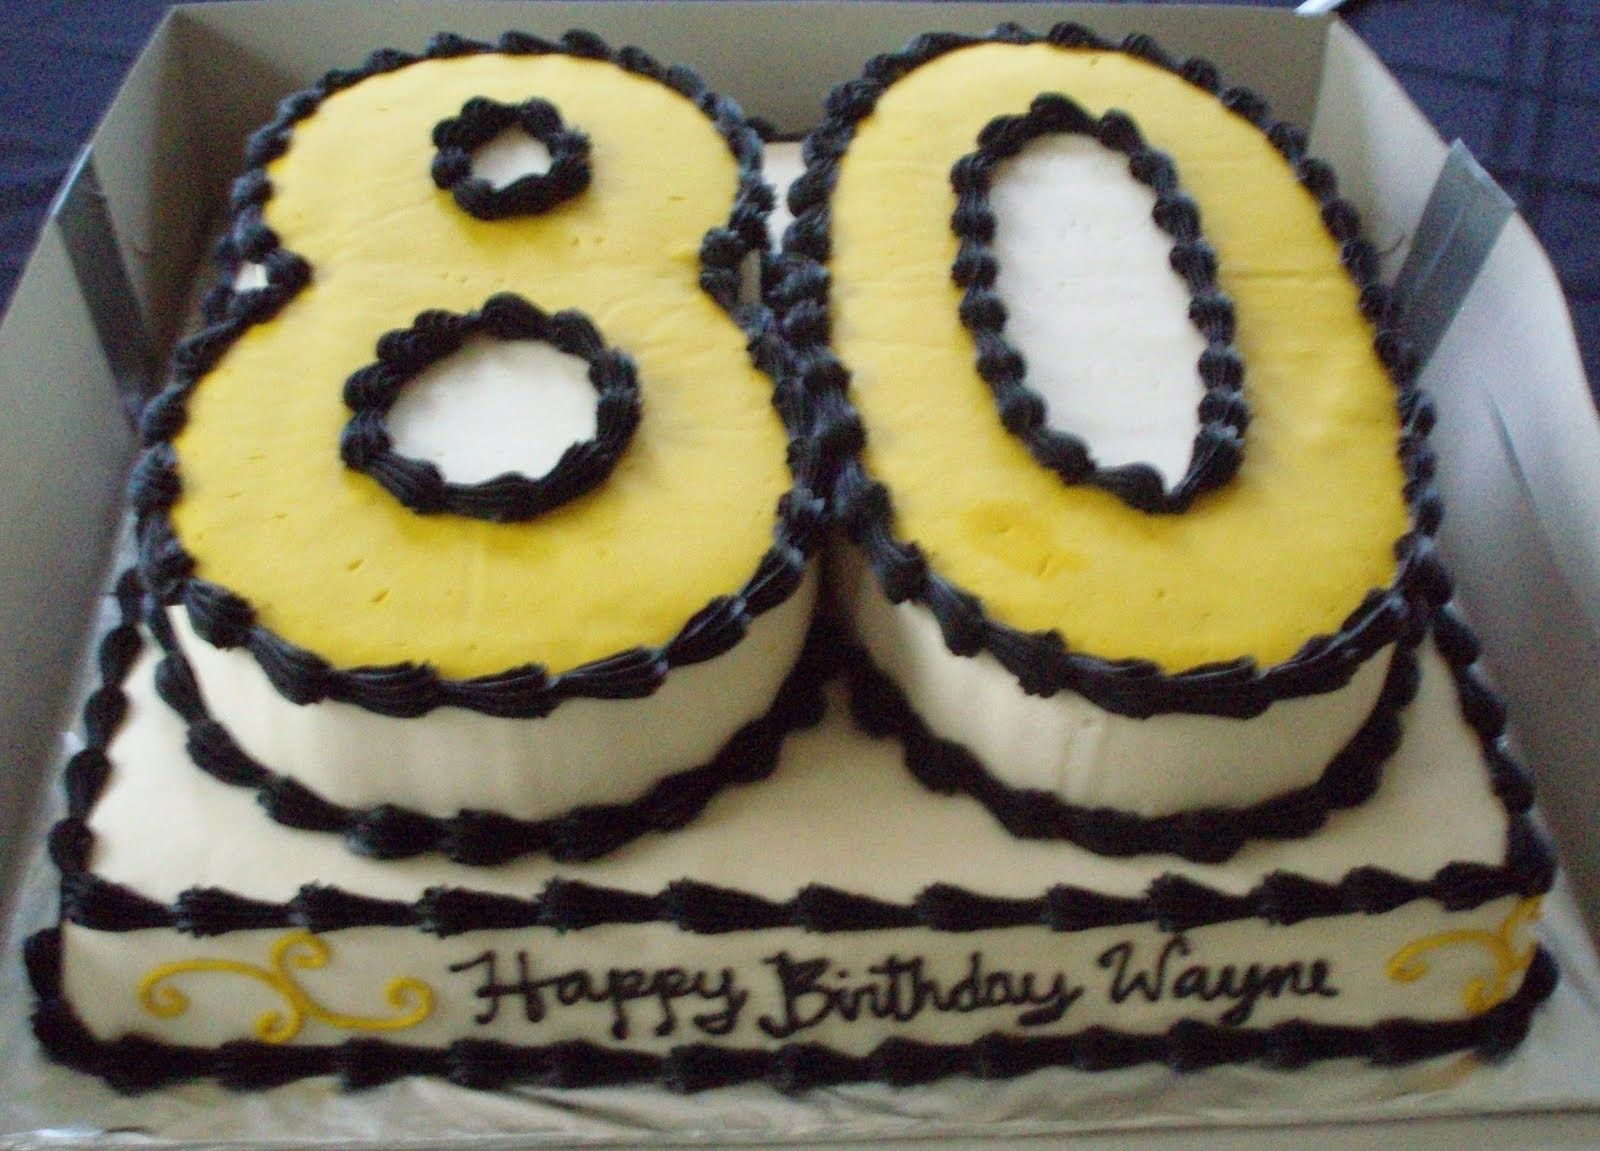 80th Birthday Cake Decorations Cakelicious Net Cakelicious Net 80 Birthday Cake Dad Birthday Cakes 80th Birthday